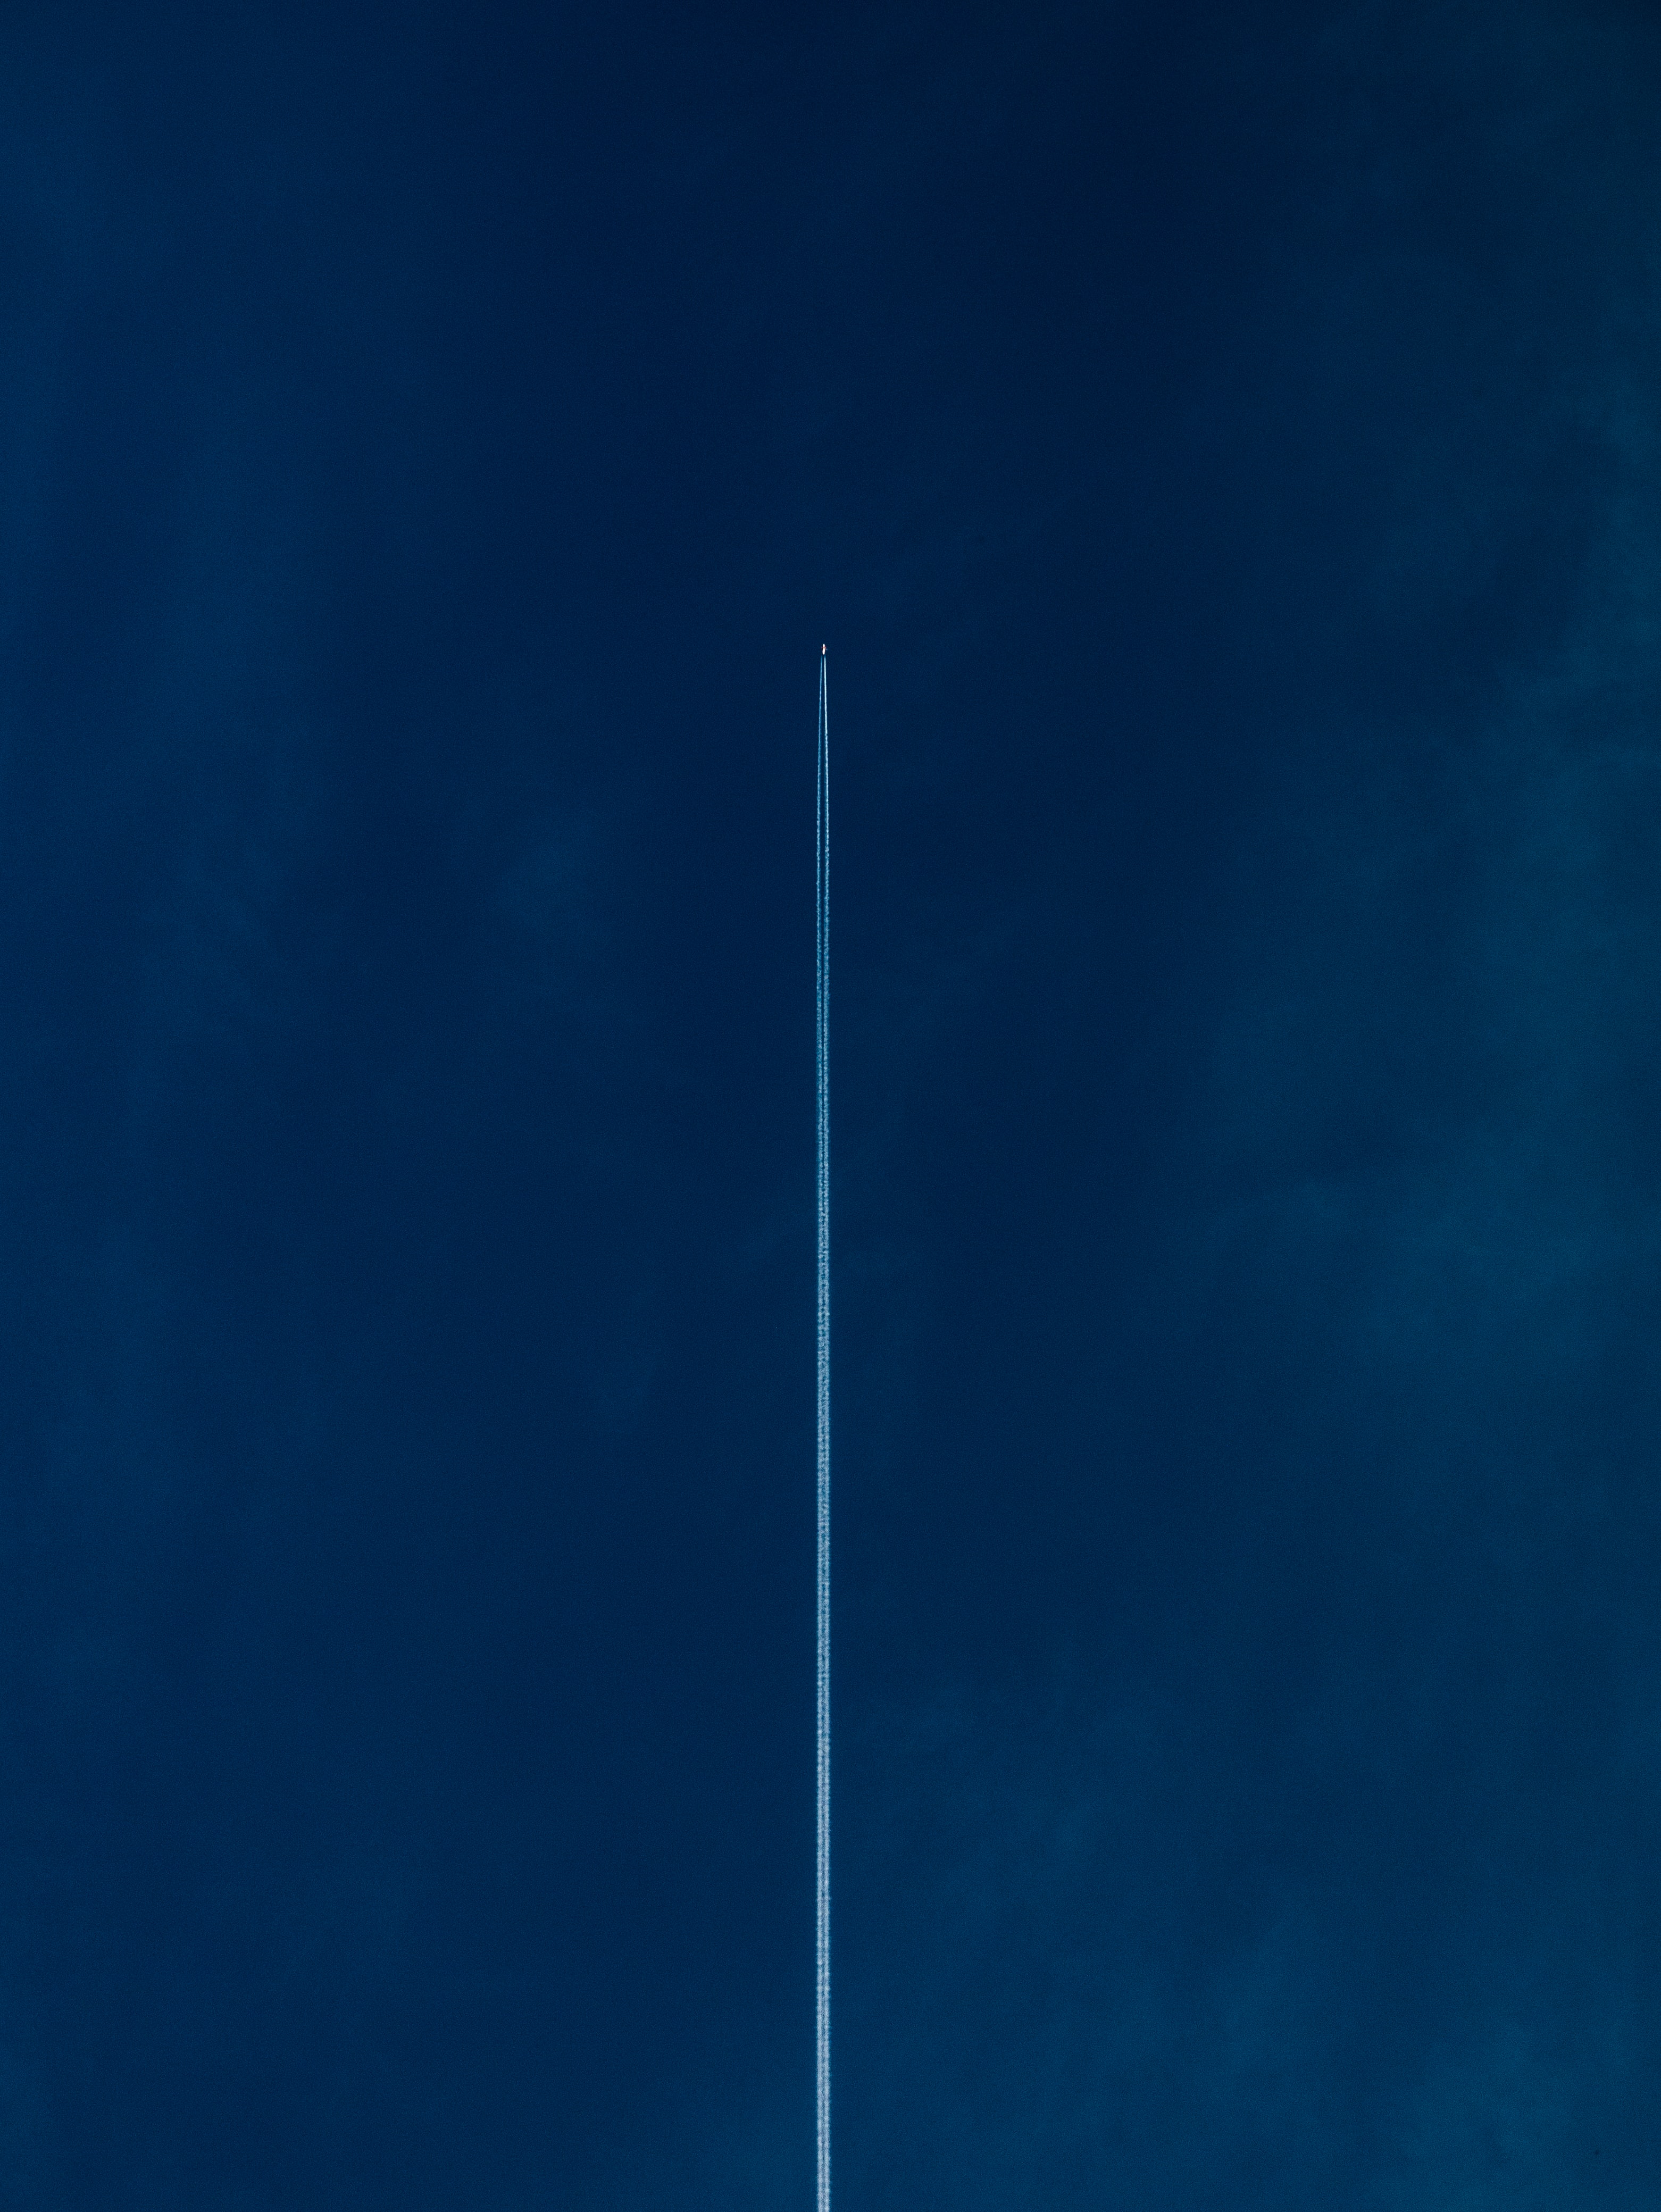 Precision performance - rocket launching into blue sky